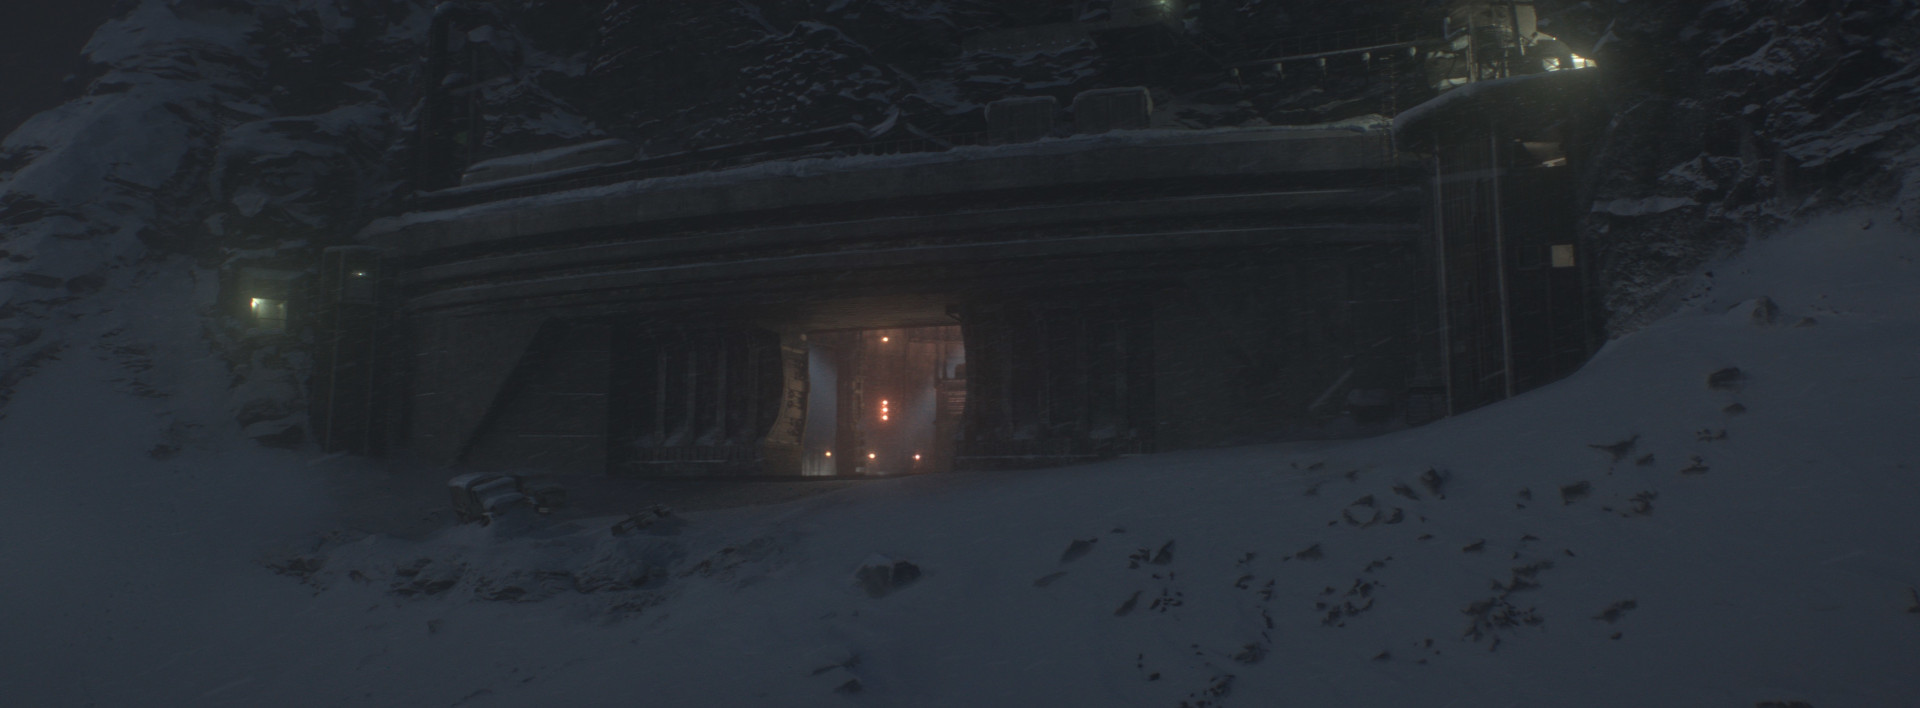 The entrance to Opal's bunker clings to a remote mountainside. Image courtesy of RISE.